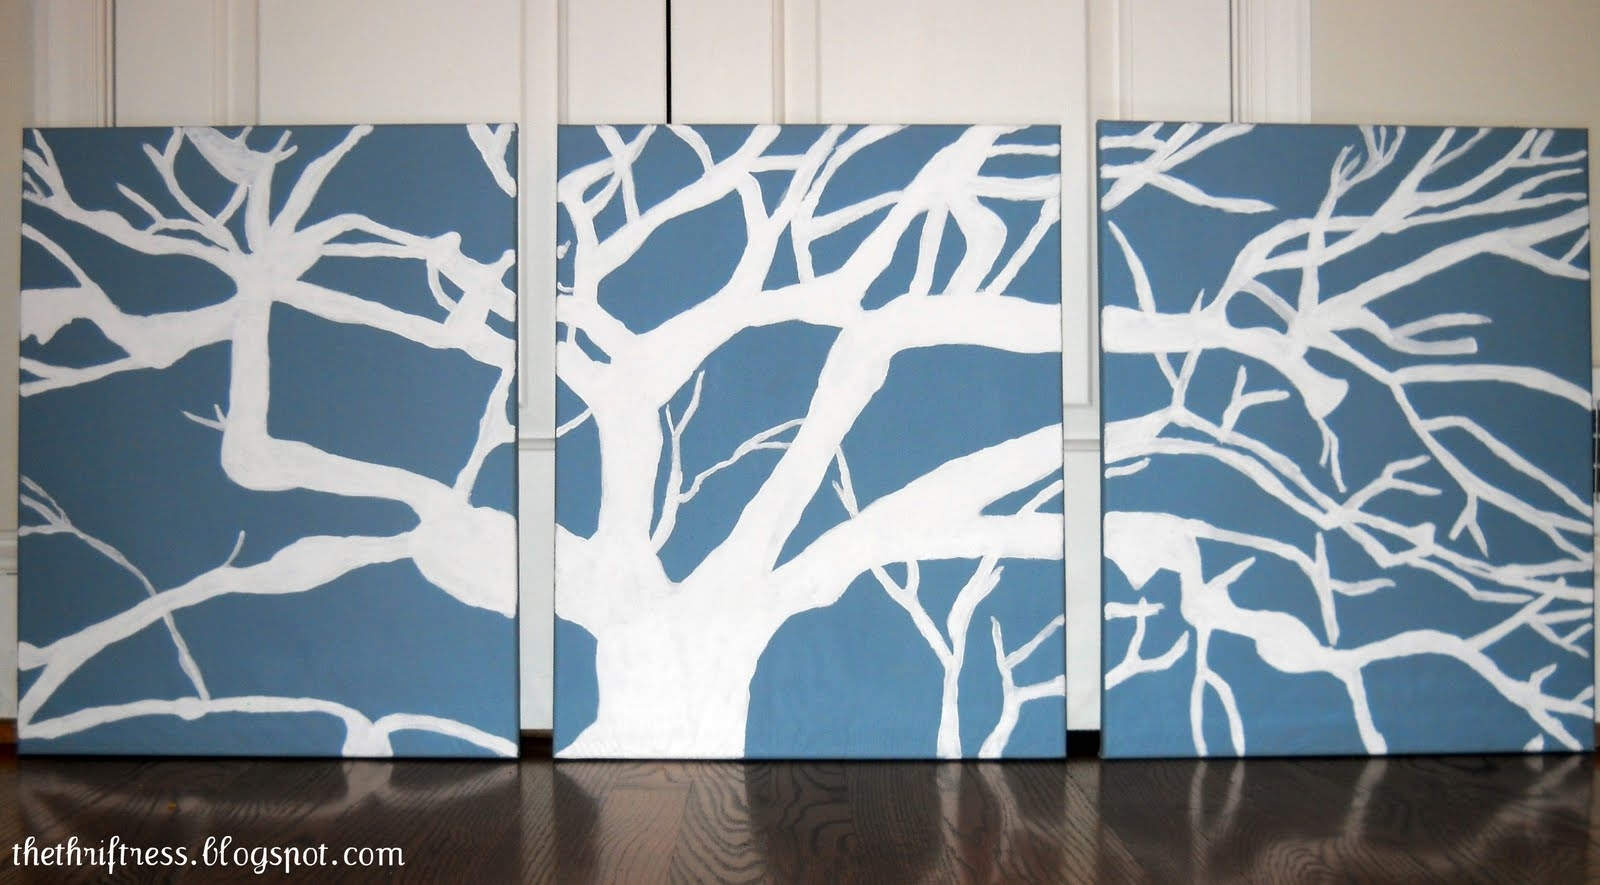 Diy Wall Art Stencils Paint Fabric – Dma Homes | #37854 Pertaining To Most Current Large Modern Fabric Wall Art (View 2 of 15)